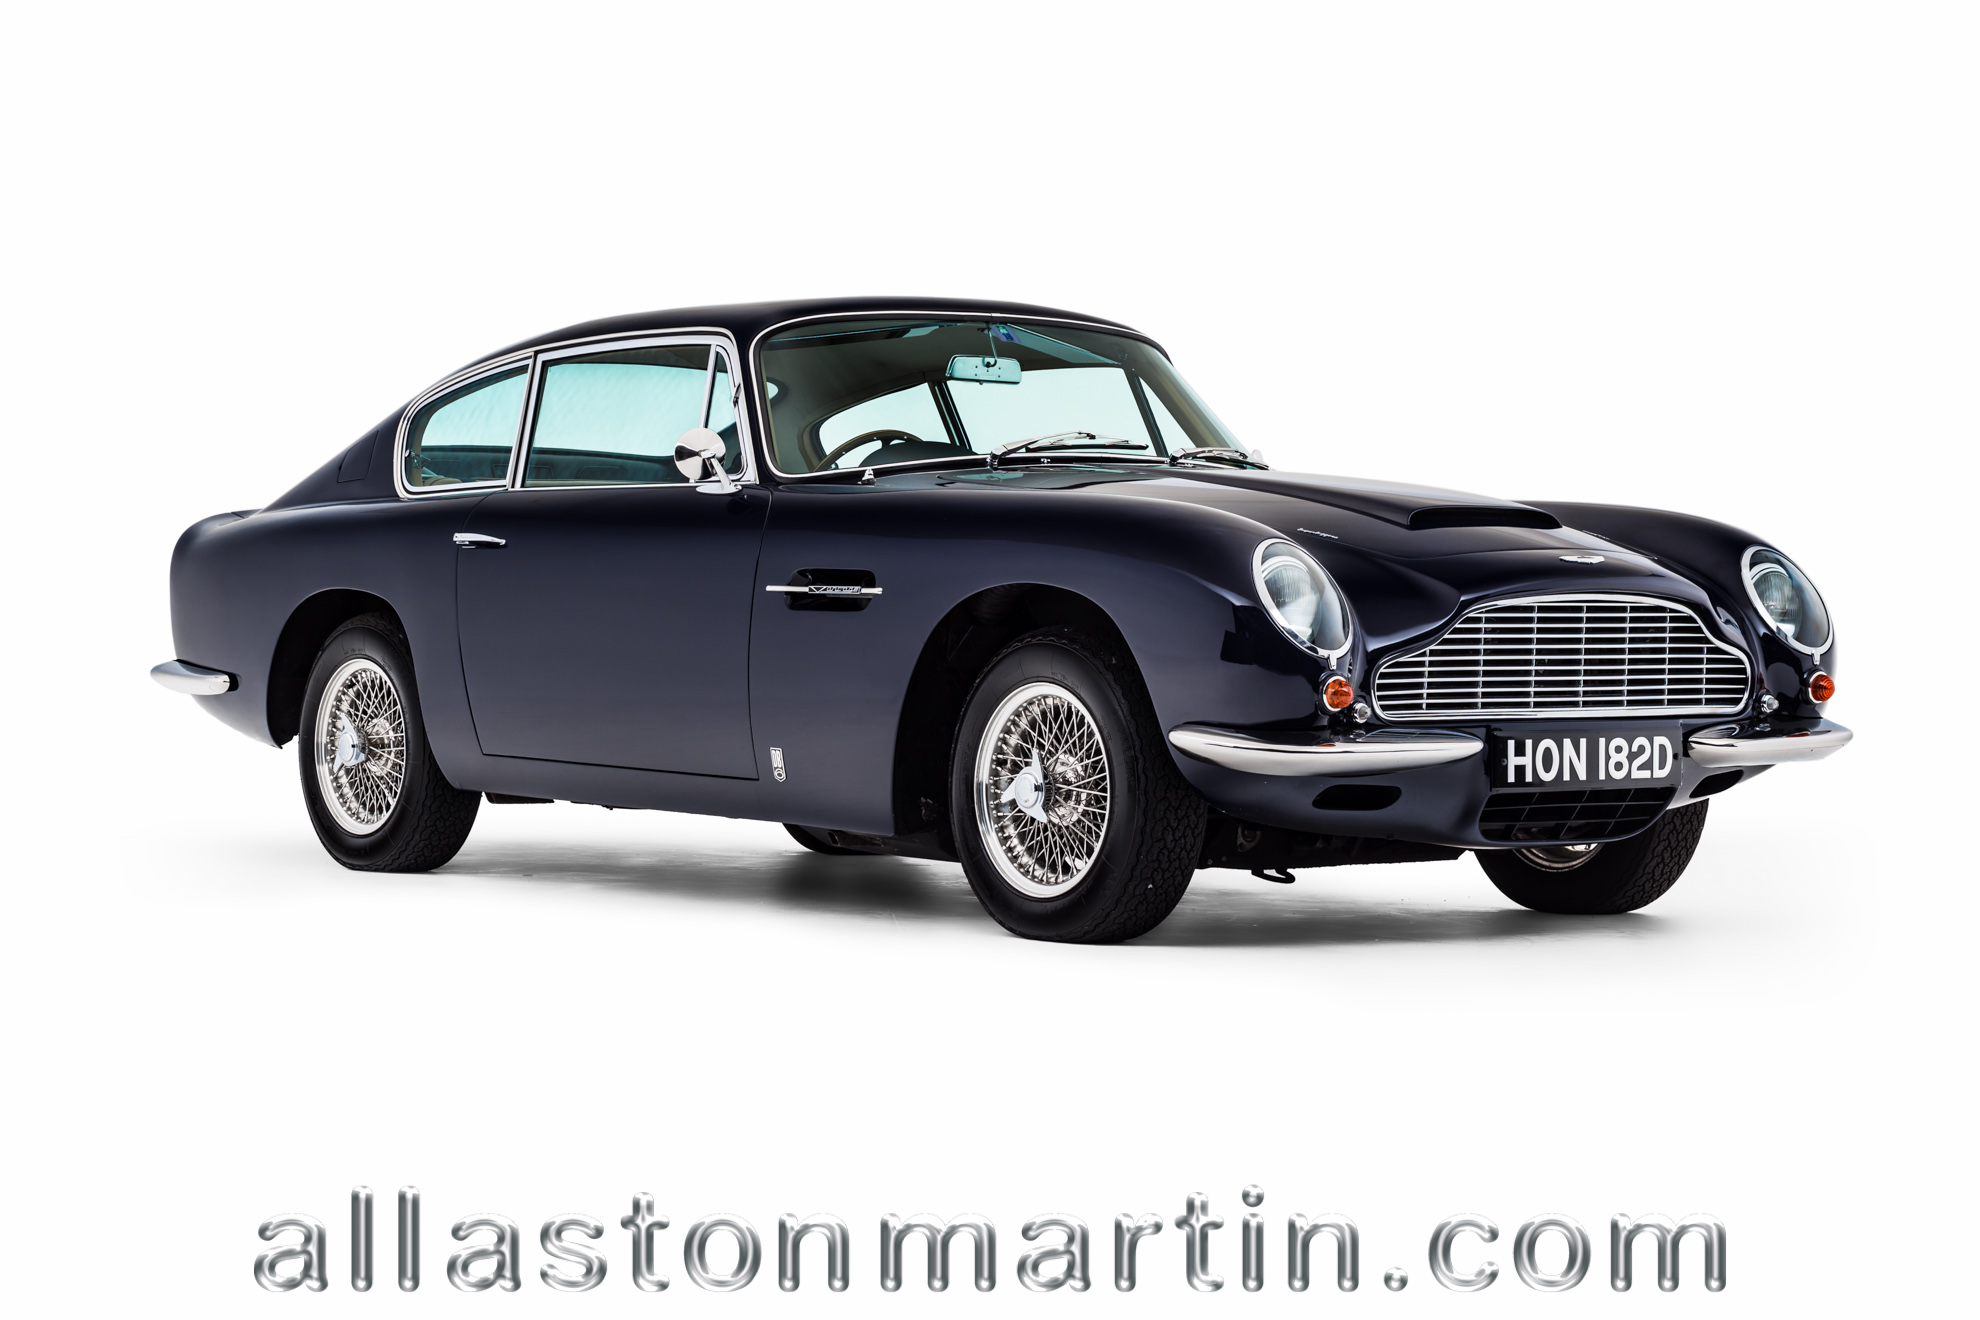 aston martin cars for sale buy aston martin details all aston martin. Black Bedroom Furniture Sets. Home Design Ideas